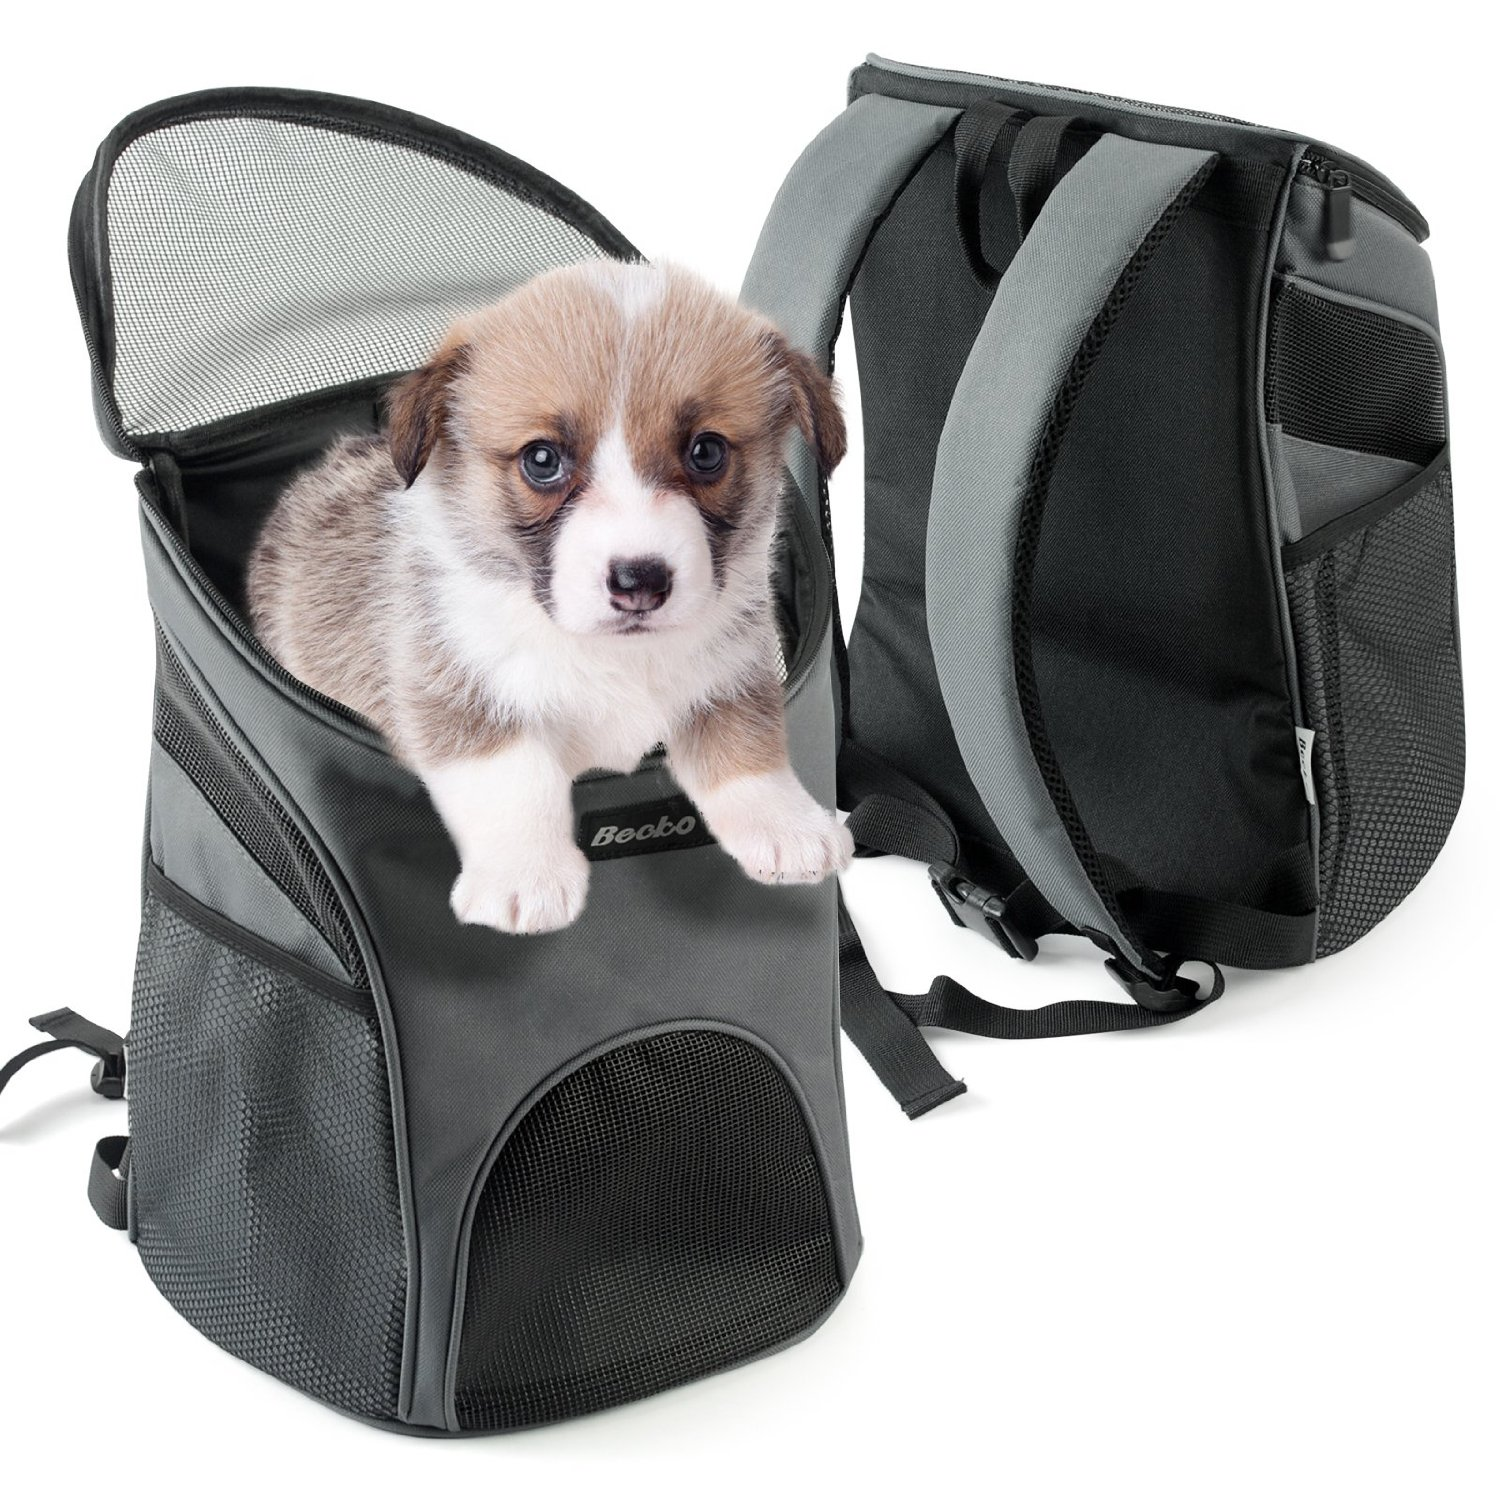 MDSTOP Cheap Pet Backpack Carrier Dogs Cats Rabbits Mesh Breathable Pack  Portable Travel Bag Transport Cage for Small Medium Dog-in Dog Carriers  from Home ... 5fd66f7f3cce